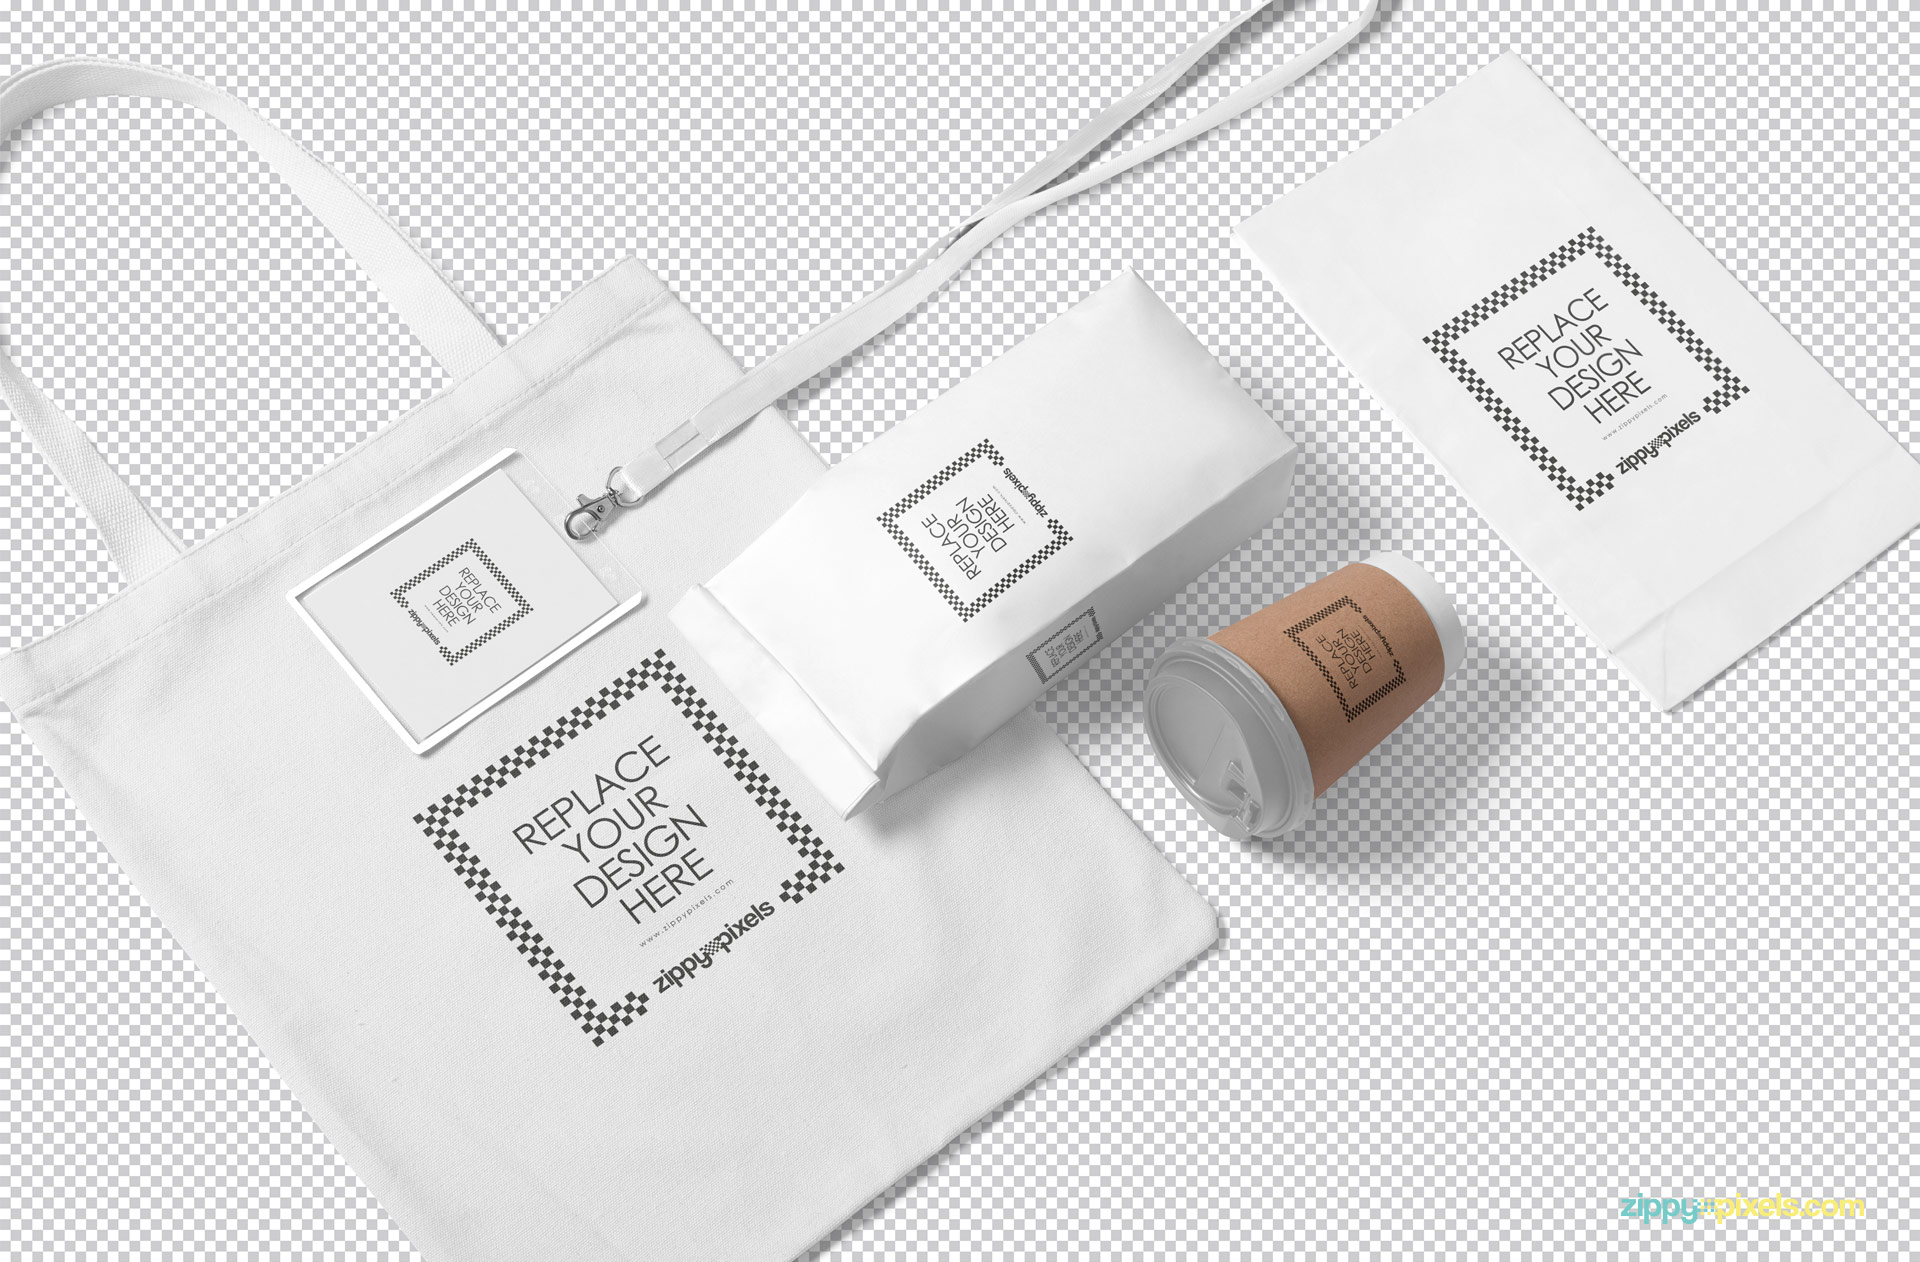 Use Photoshop to customize the whole packaging mockup scene.